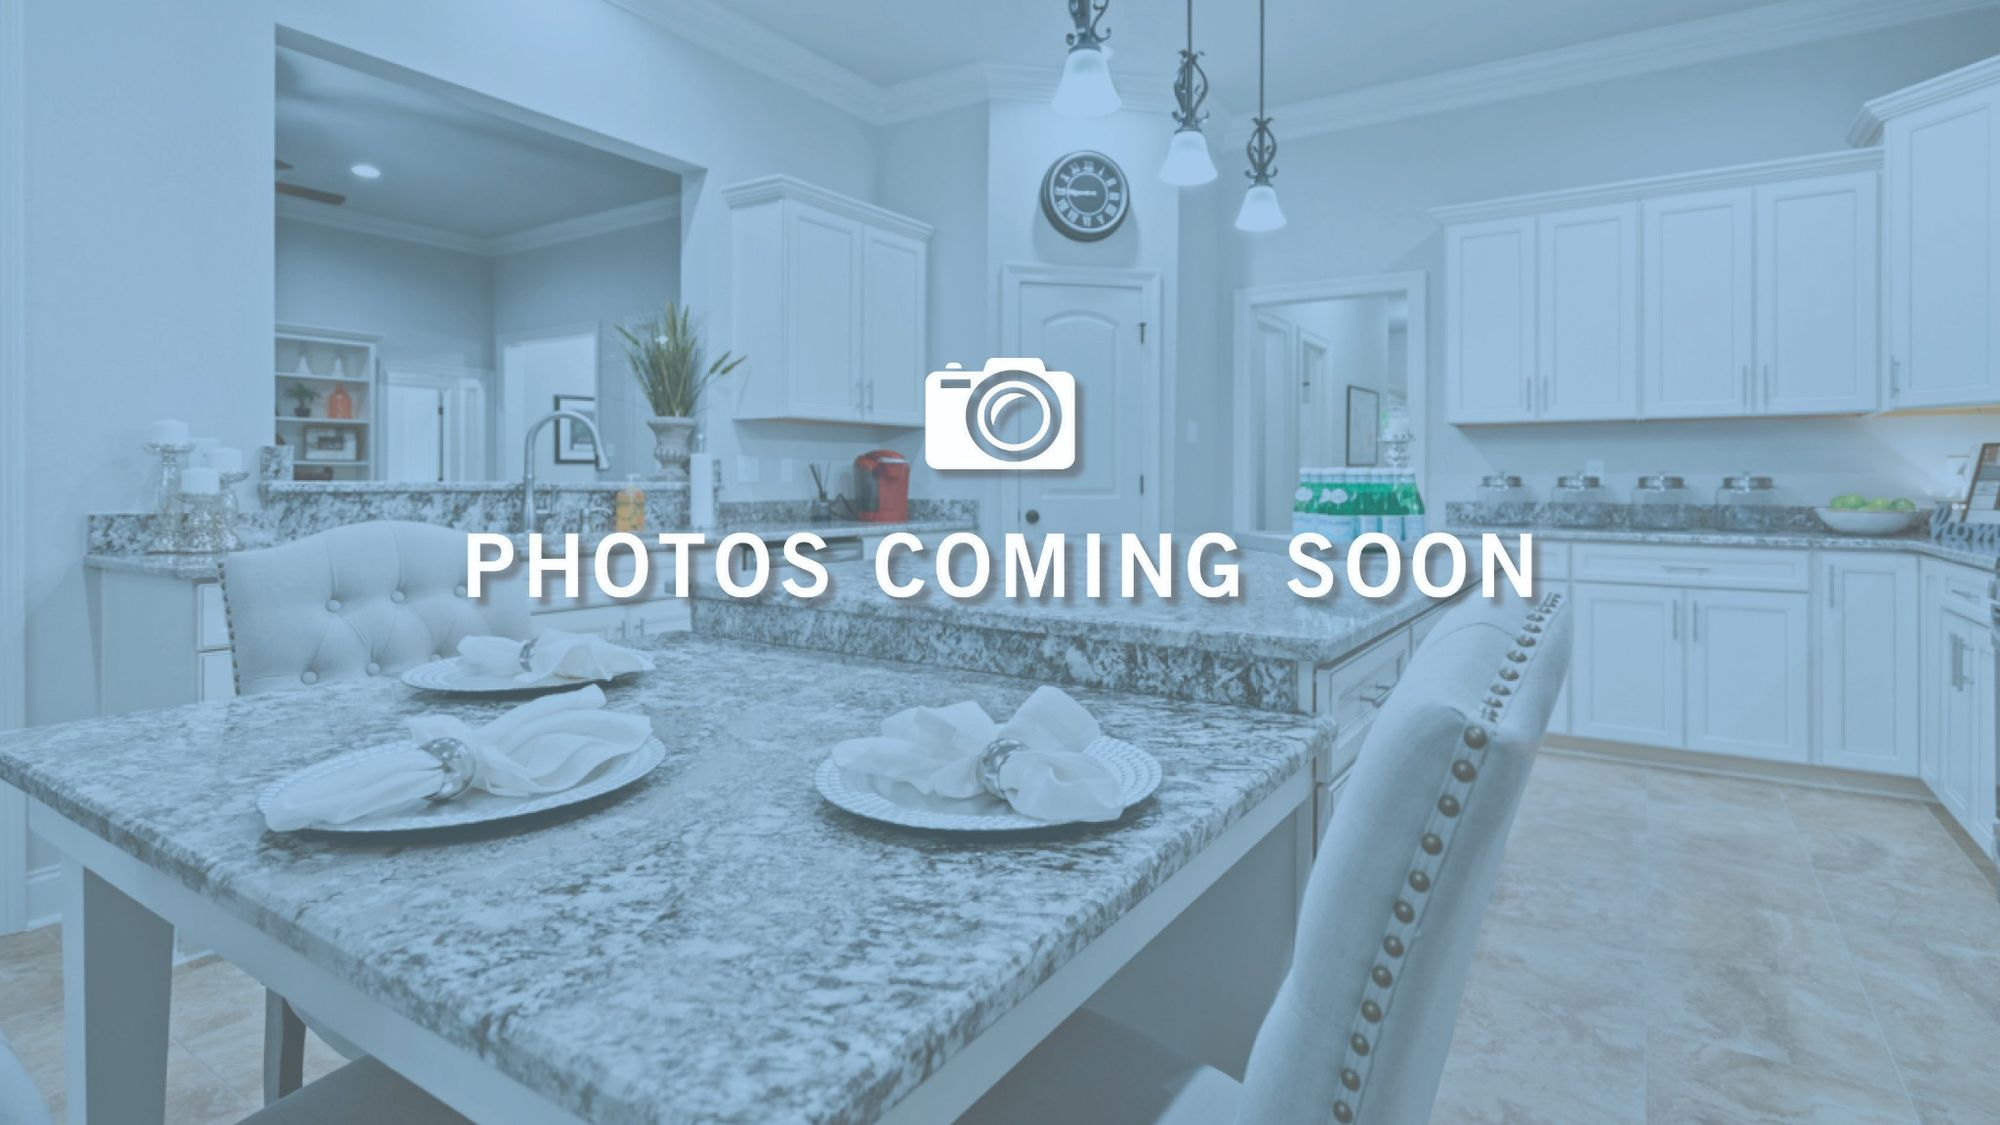 North Haven Estates - DSLD Homes Community - Ponchatoula, LA - Photos Coming Soon